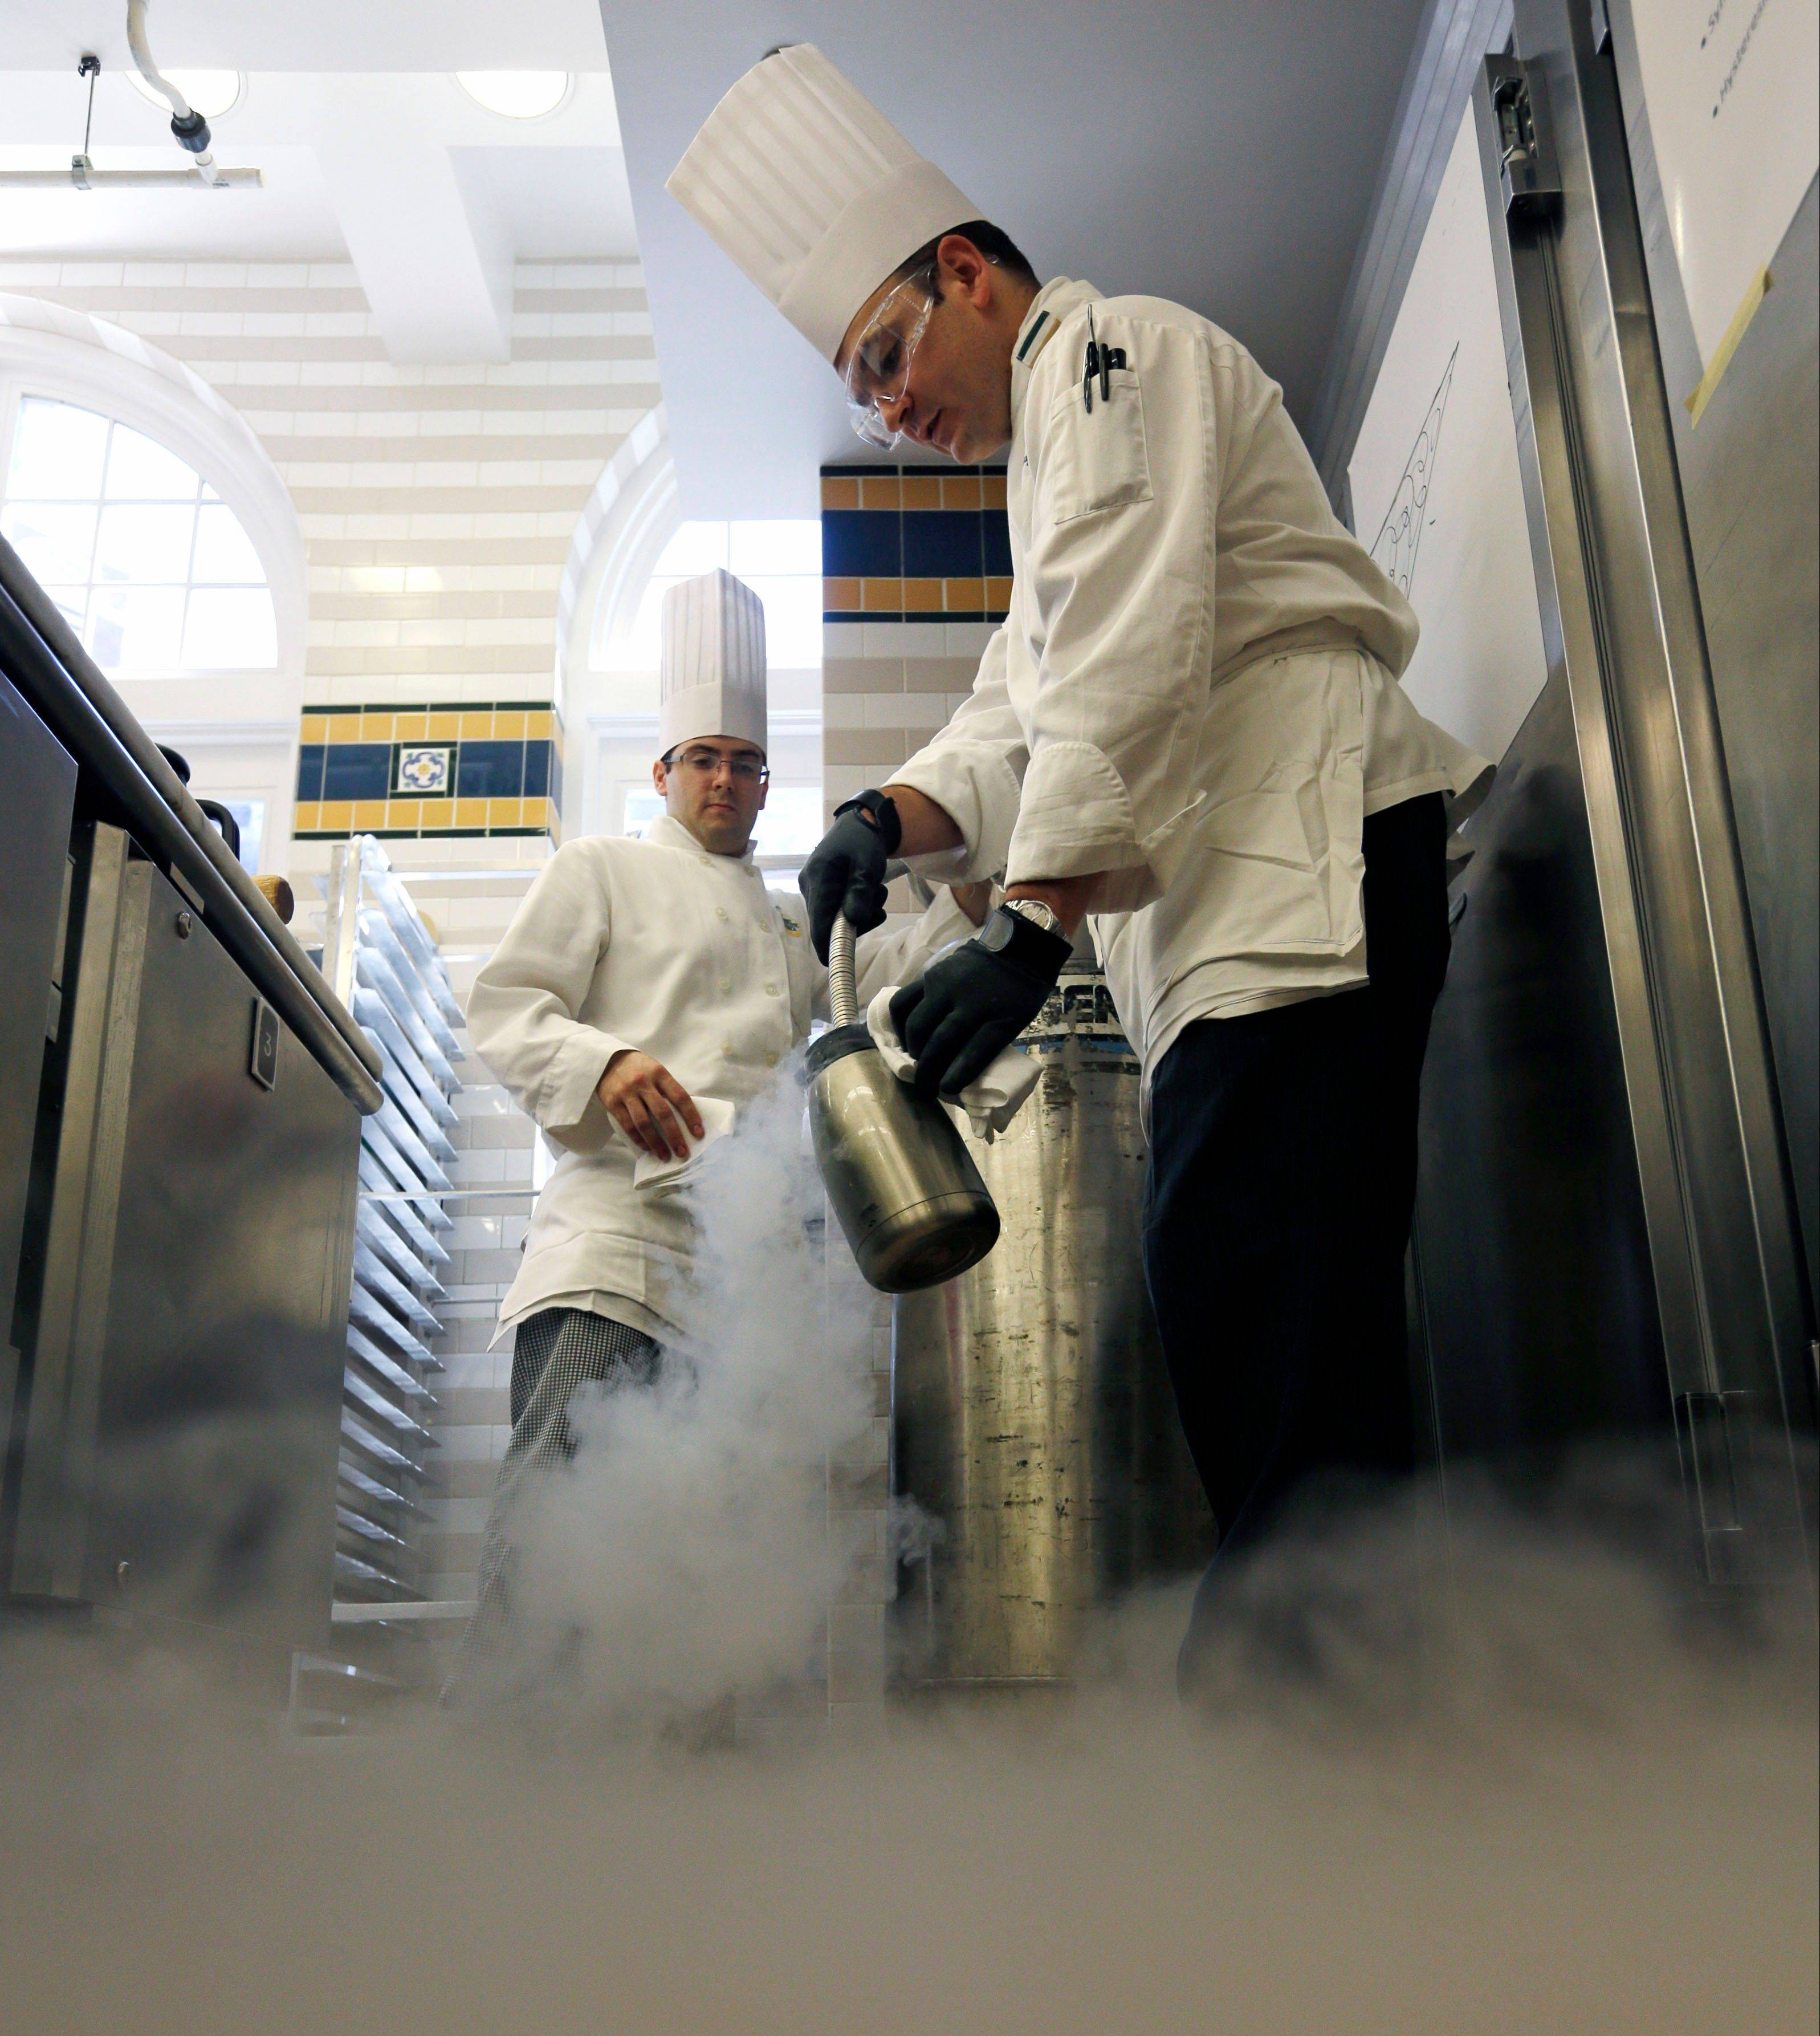 Culinary Institute of America instructor chef Francisco Migoya, right, fills a container with liquid nitrogen as pastry manager-in-training Douglas Phillips looks on in one of the kitchen classrooms at the esteemed New York cooking school.